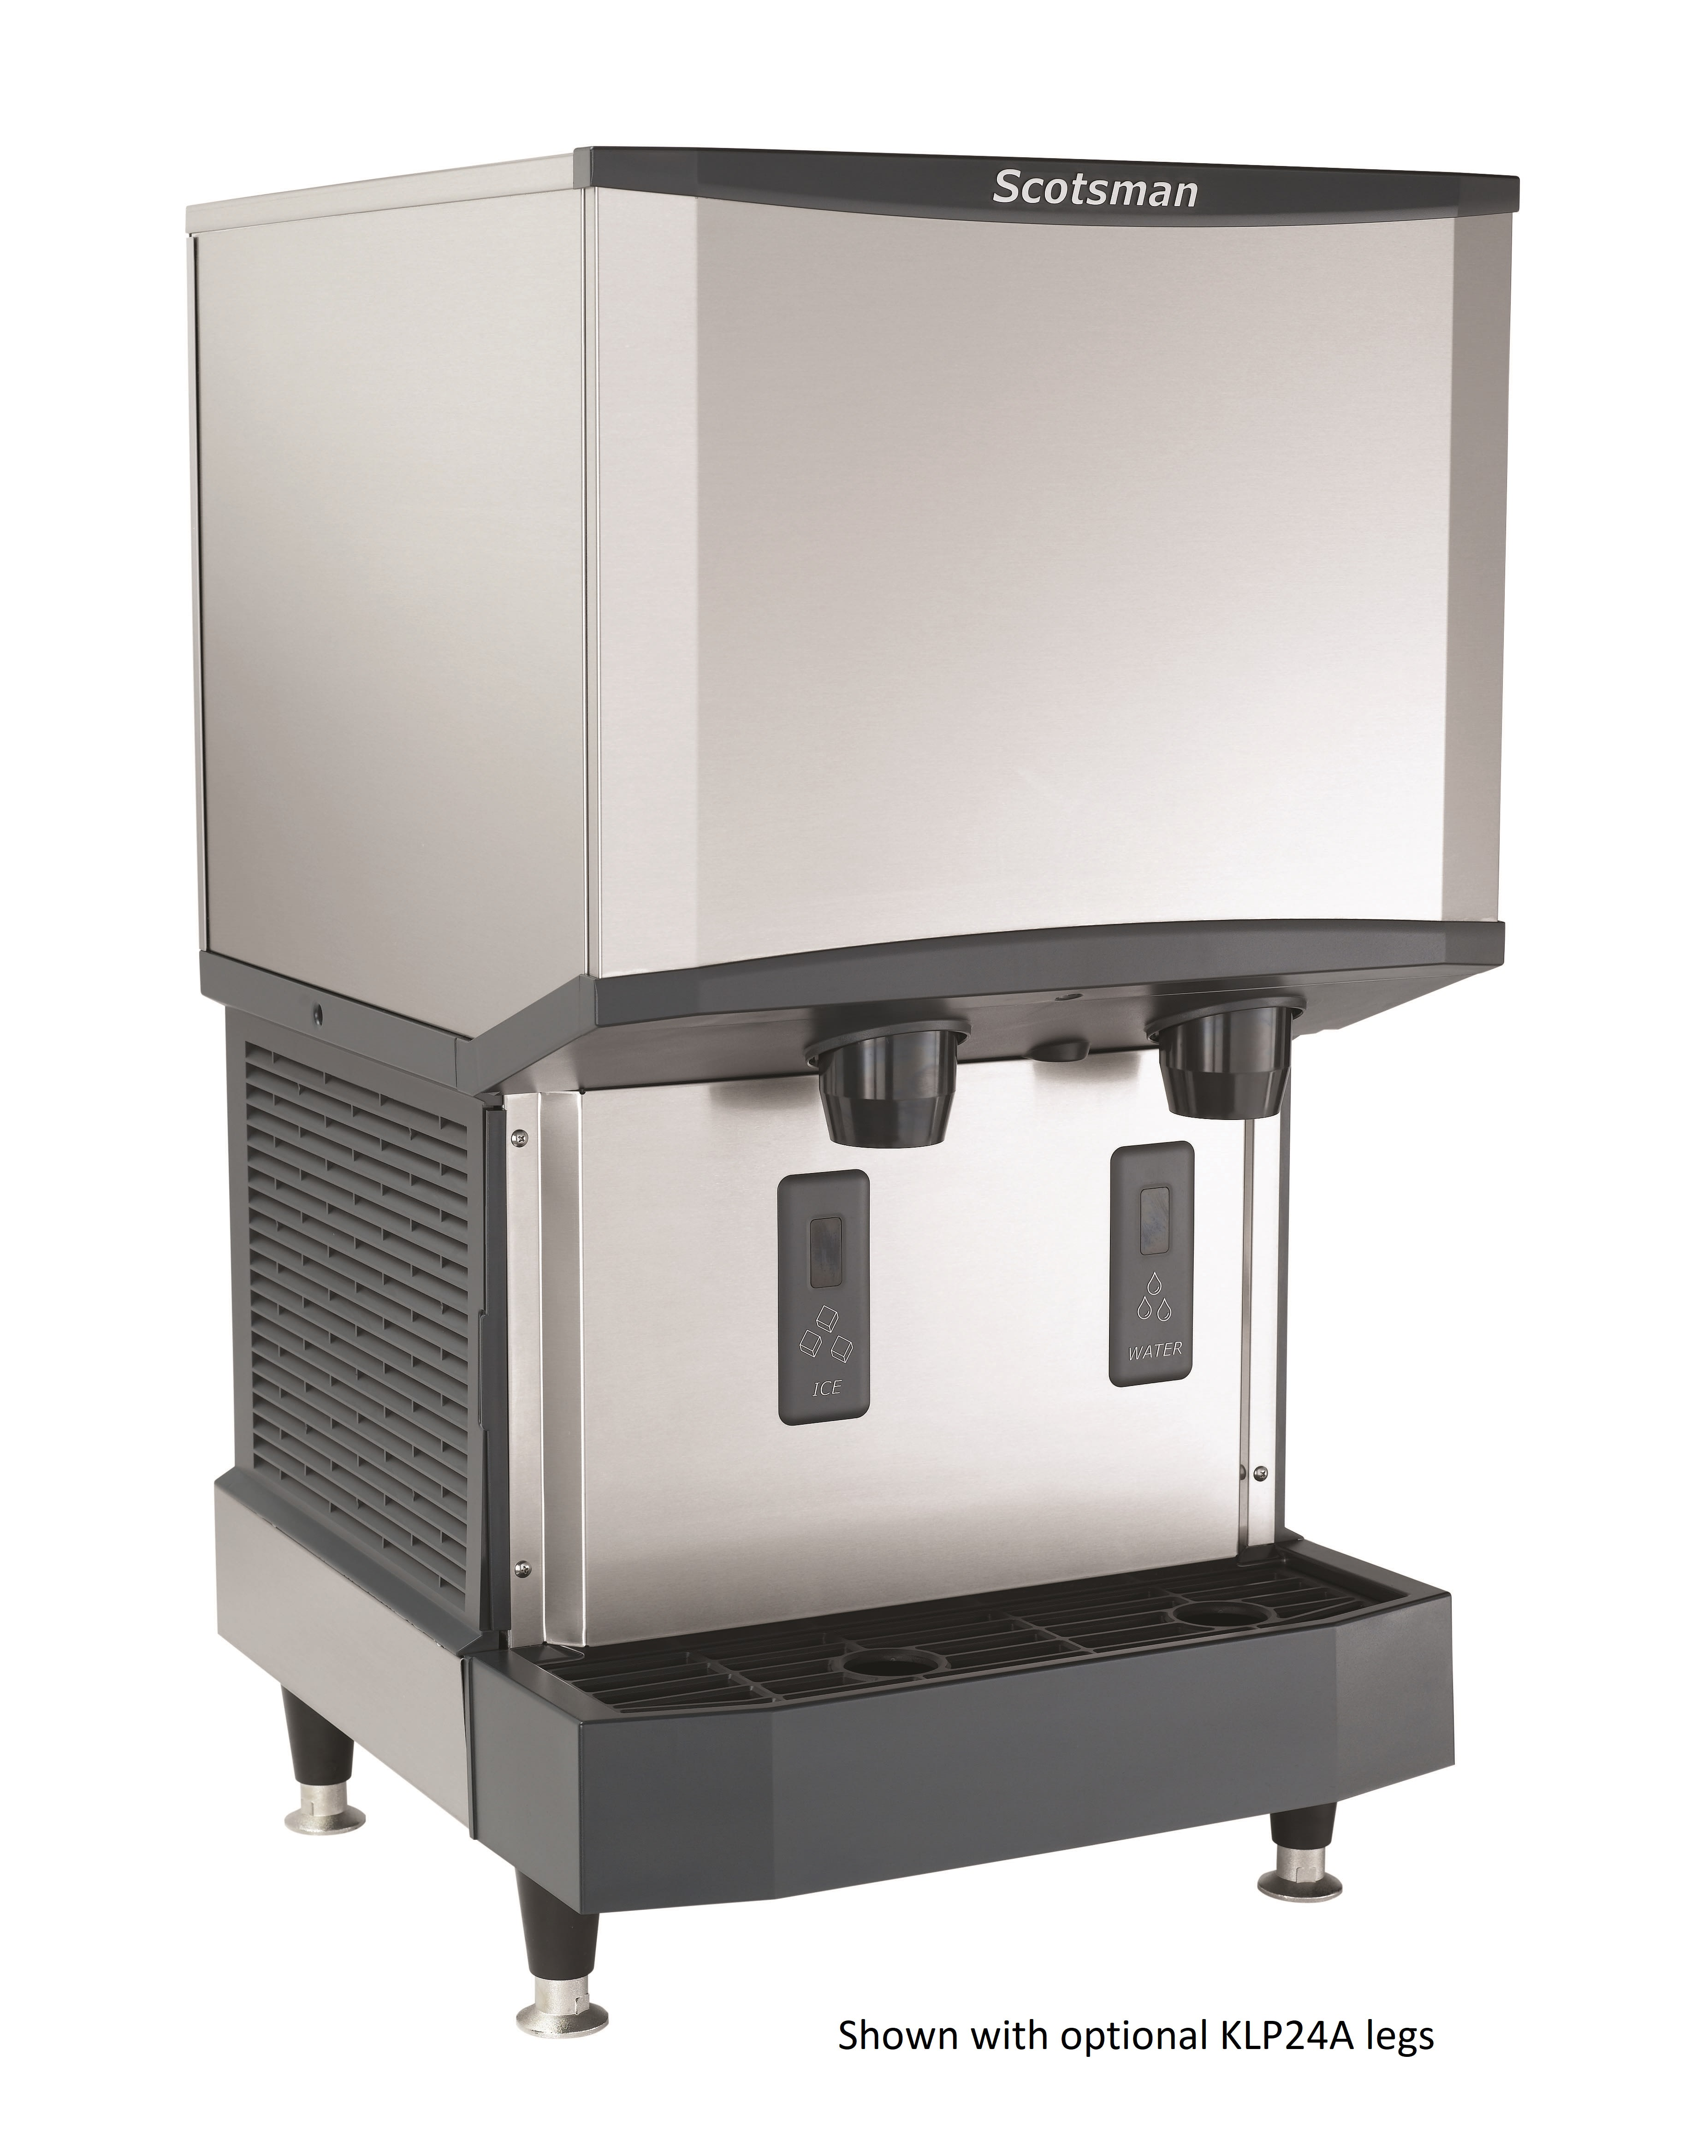 Scotsman Hid525a 1a Meridian Ice Machine And Water Dispenser